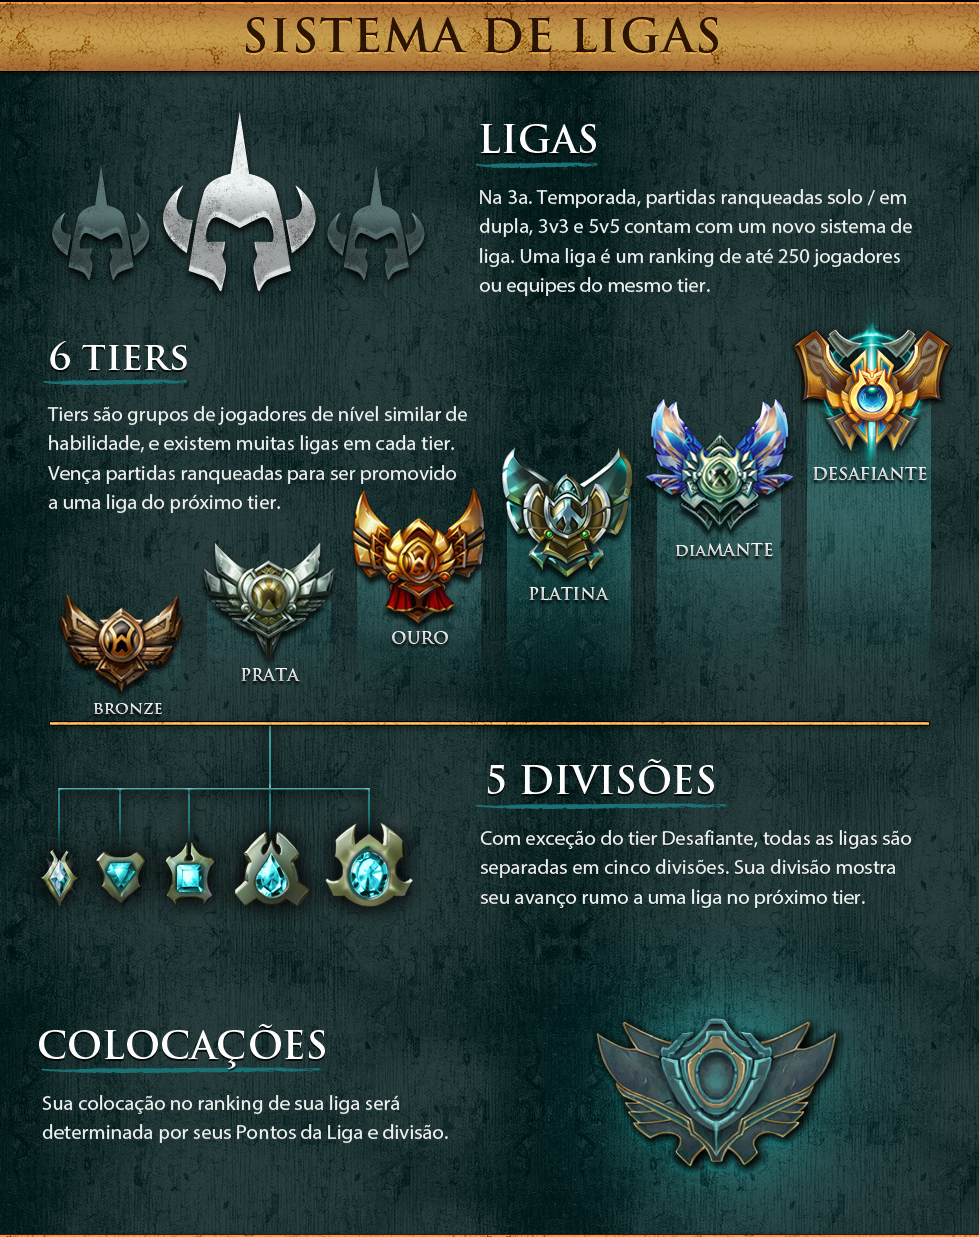 Sistema de Ligas de League of Legends (Foto: Divulgação)